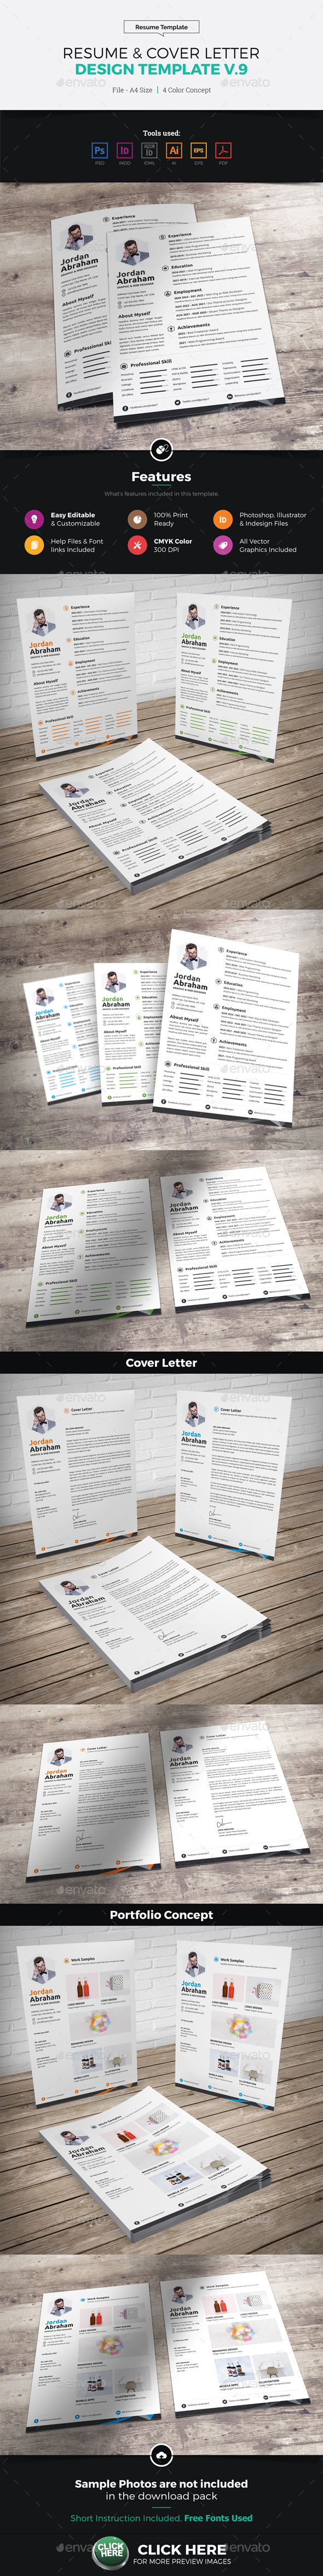 Resume & Cover Letter Design v9 - Resumes Stationery